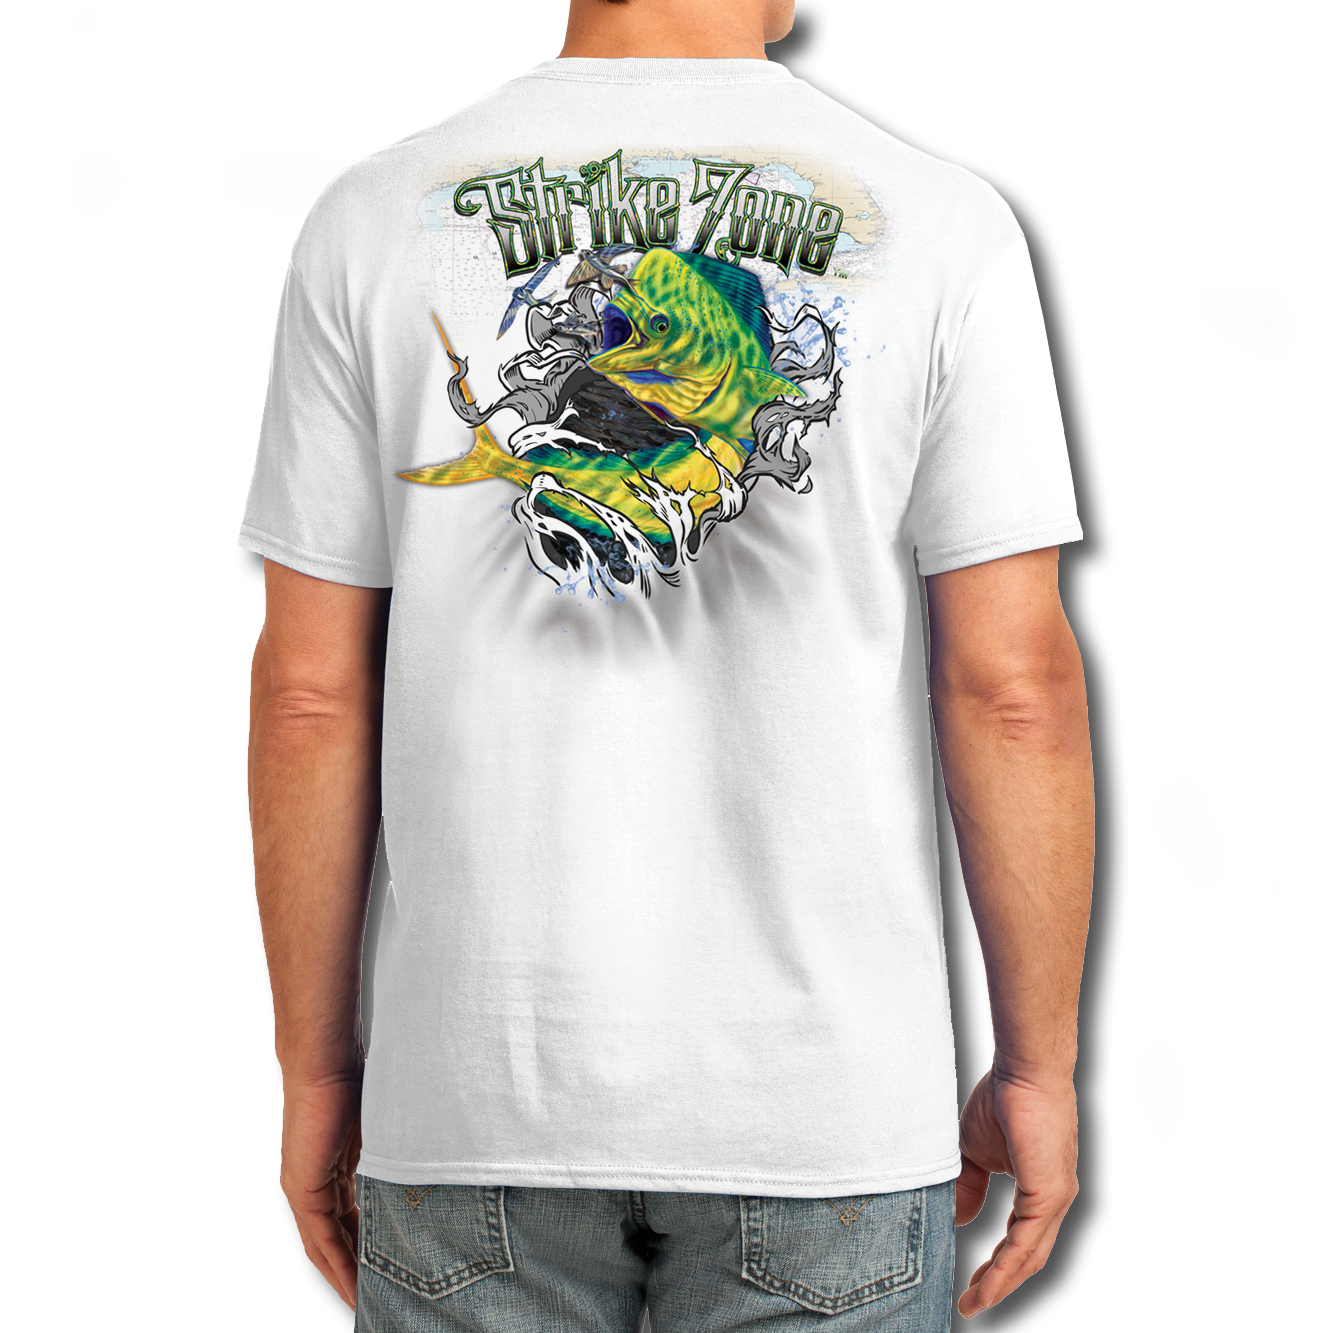 t-shirt-short-sleeve-white-jason-mathias-art-mahi-dorado-dolphin-fish.png